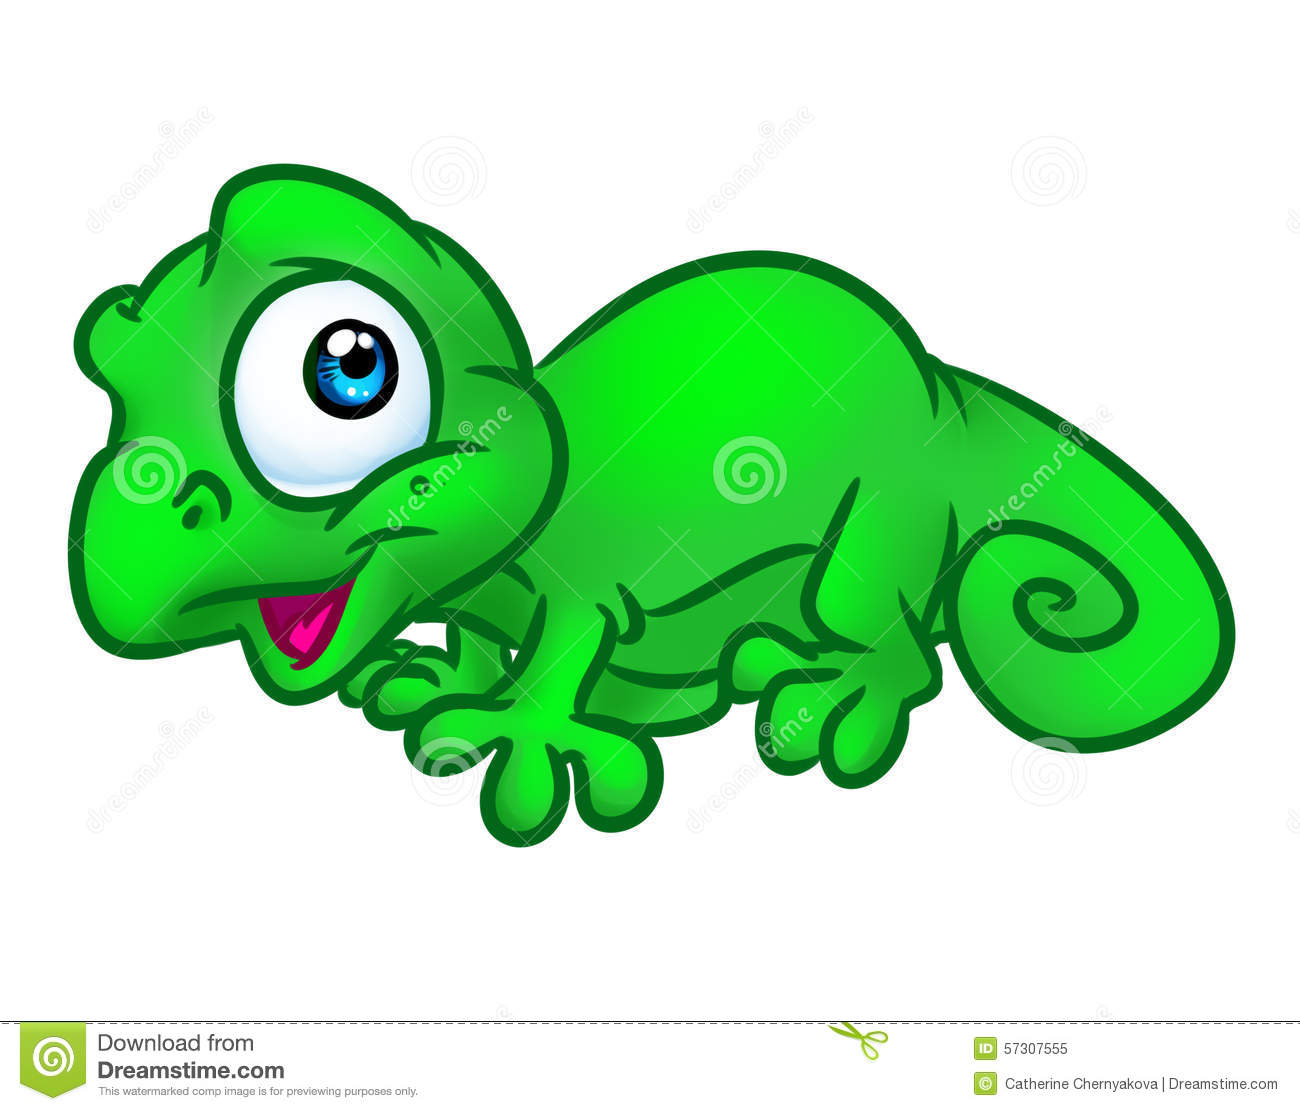 Chameleon clipart baby. Pencil and in color